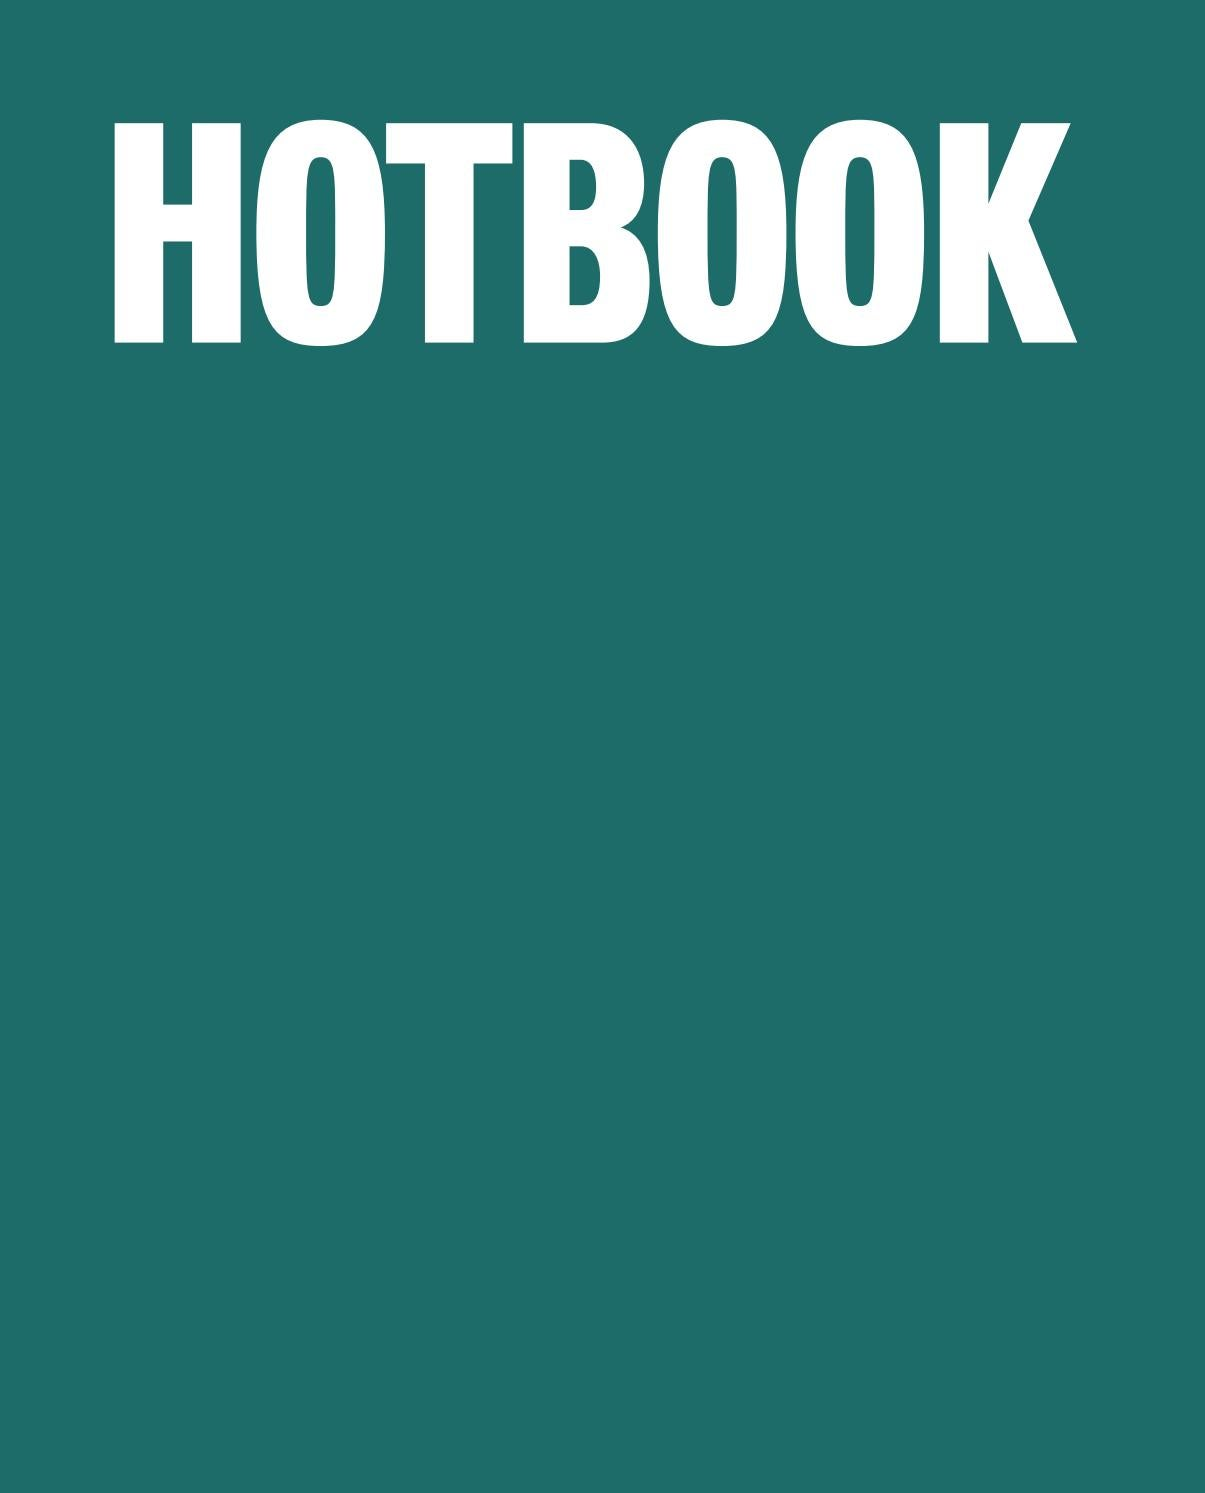 cea095585b HOTBOOK 028 by HOTBOOK - issuu